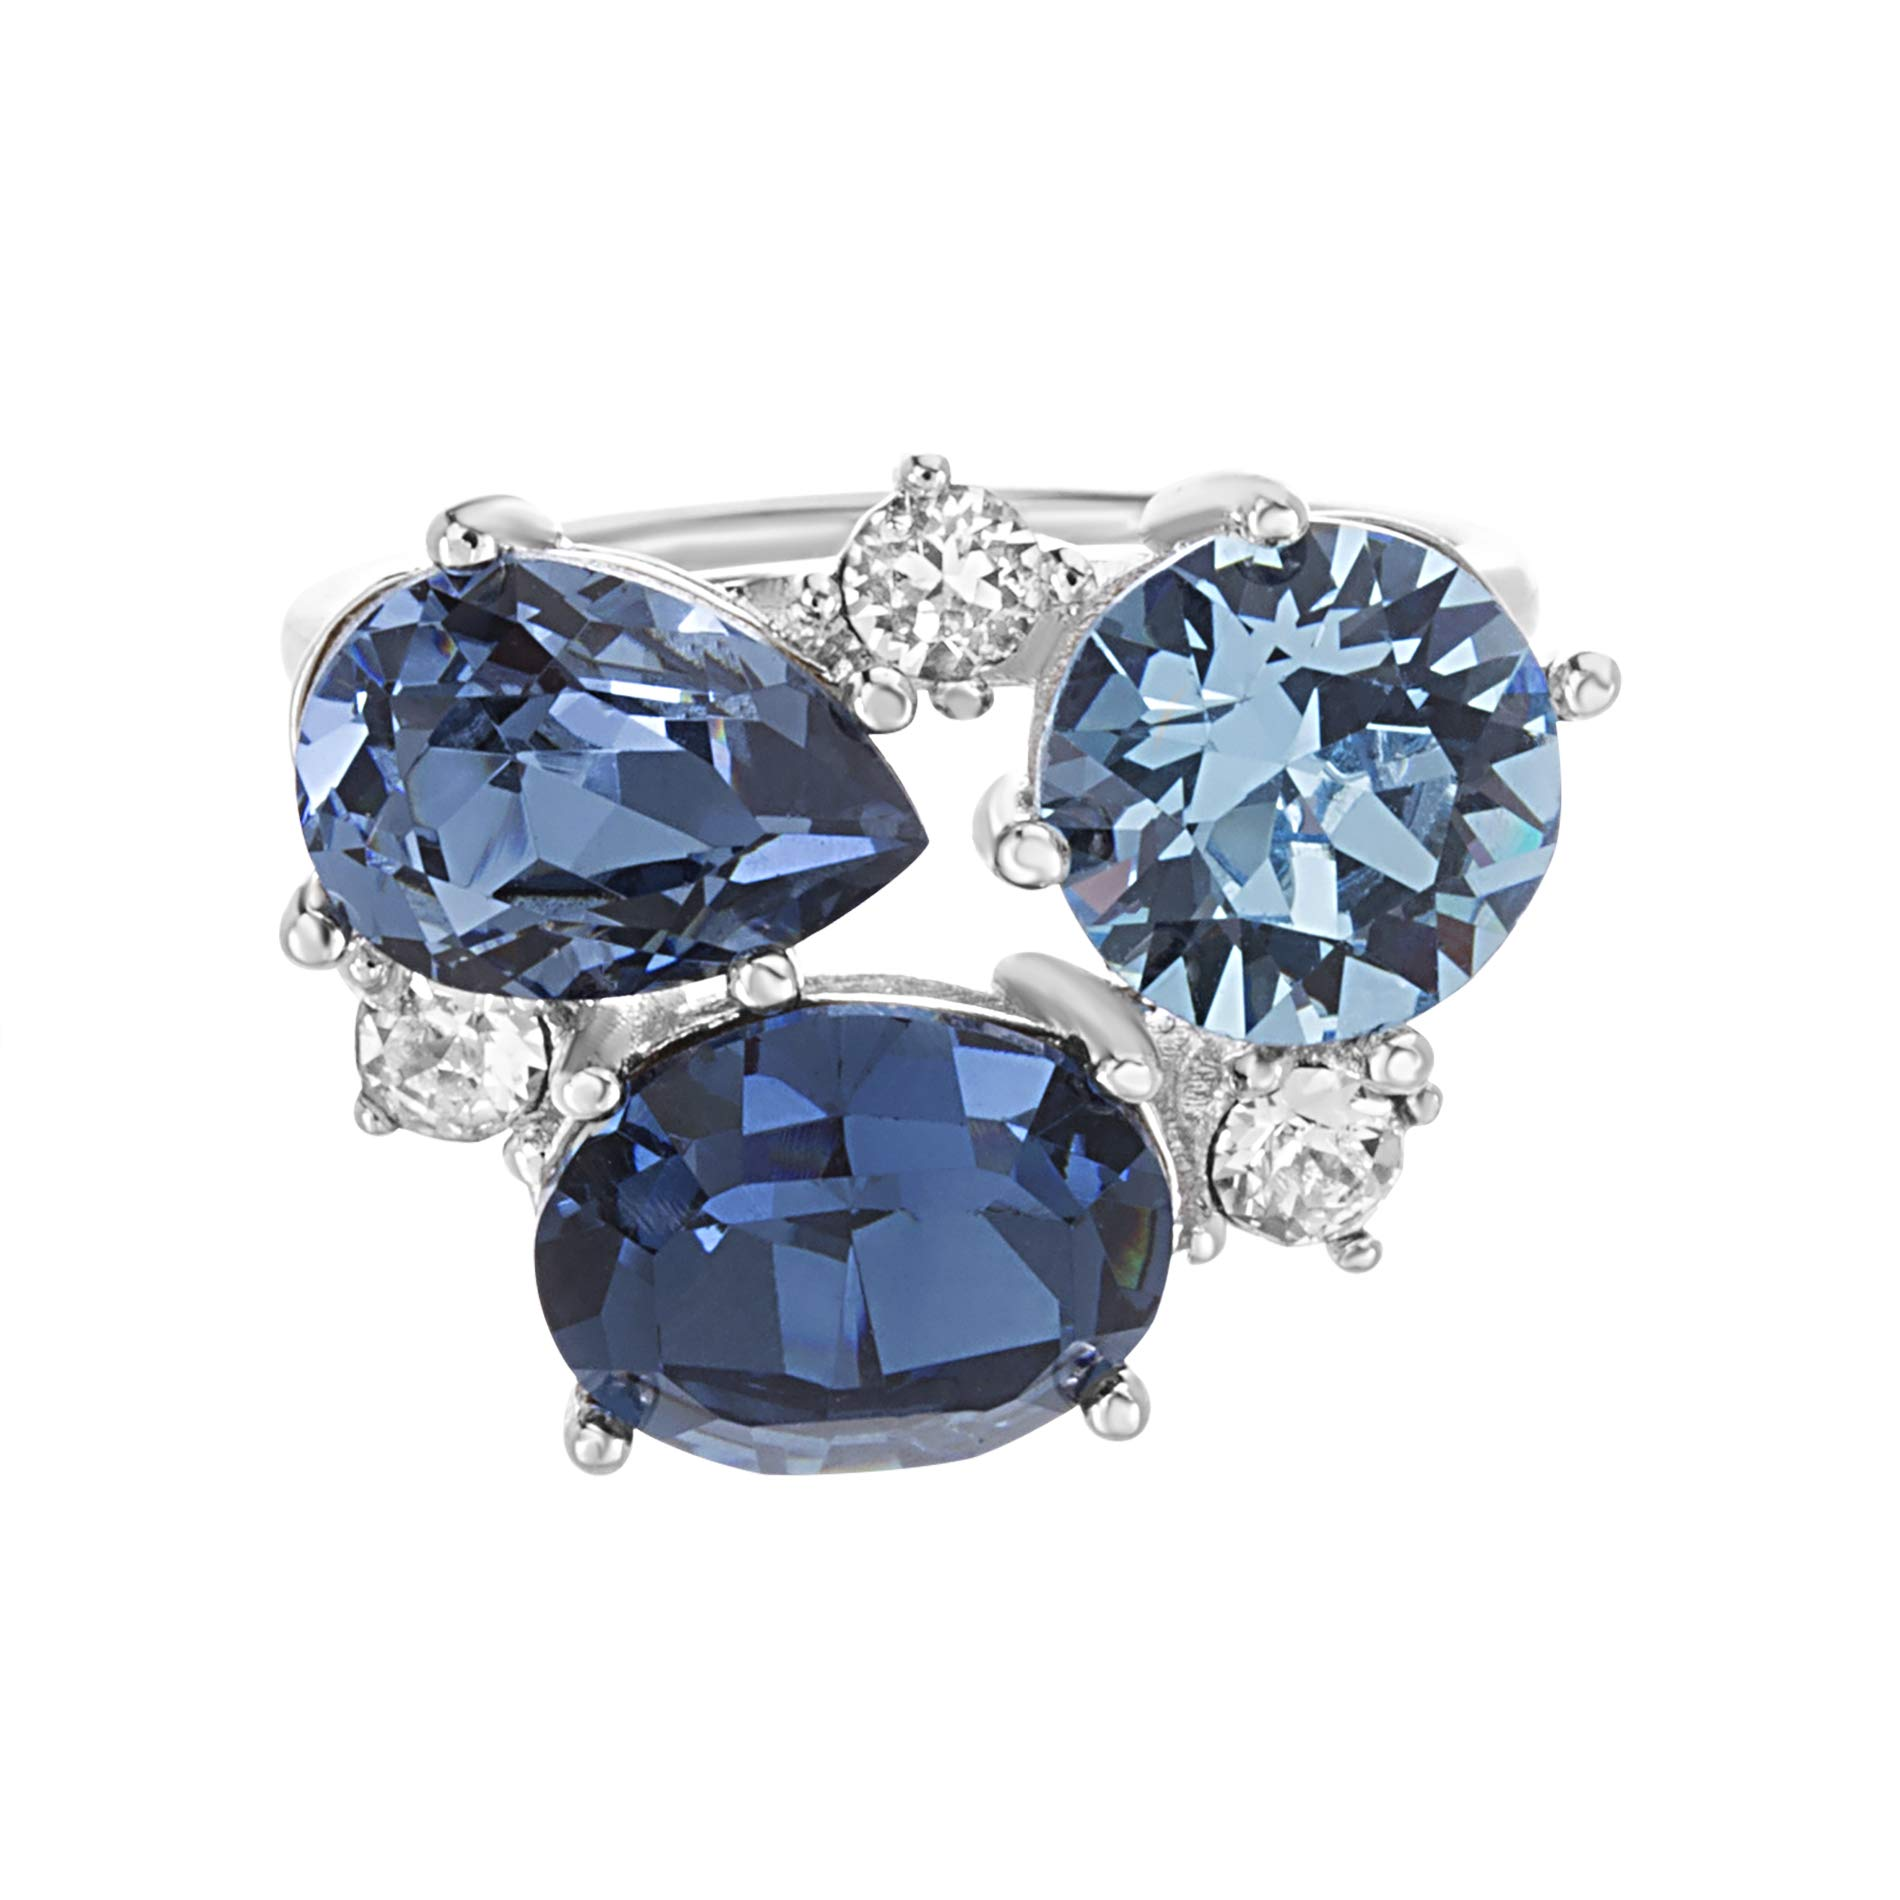 Devin Rose Cluster Style Ring for Women in Rhodium Plated Brass with Swarovski Crystals (Color: Aquamarine, Montana, Blue Denim)